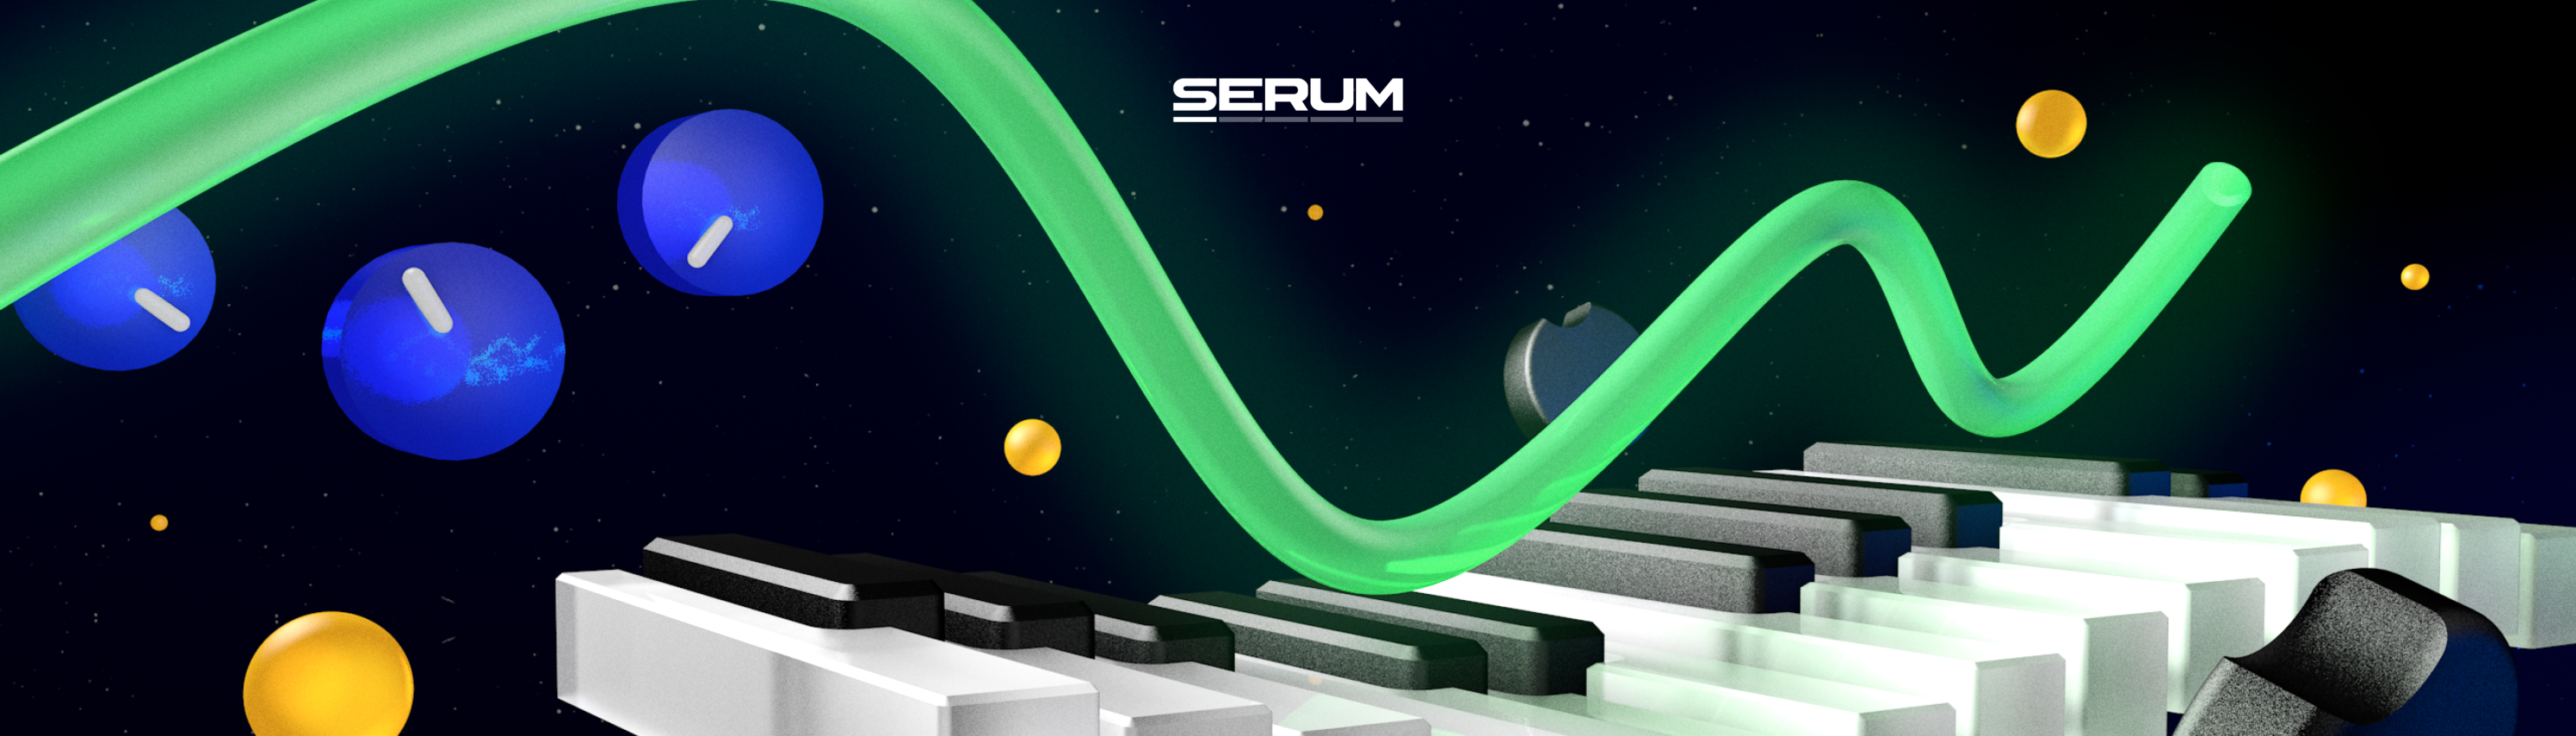 Serum synth free trial | Download high  2019-04-18